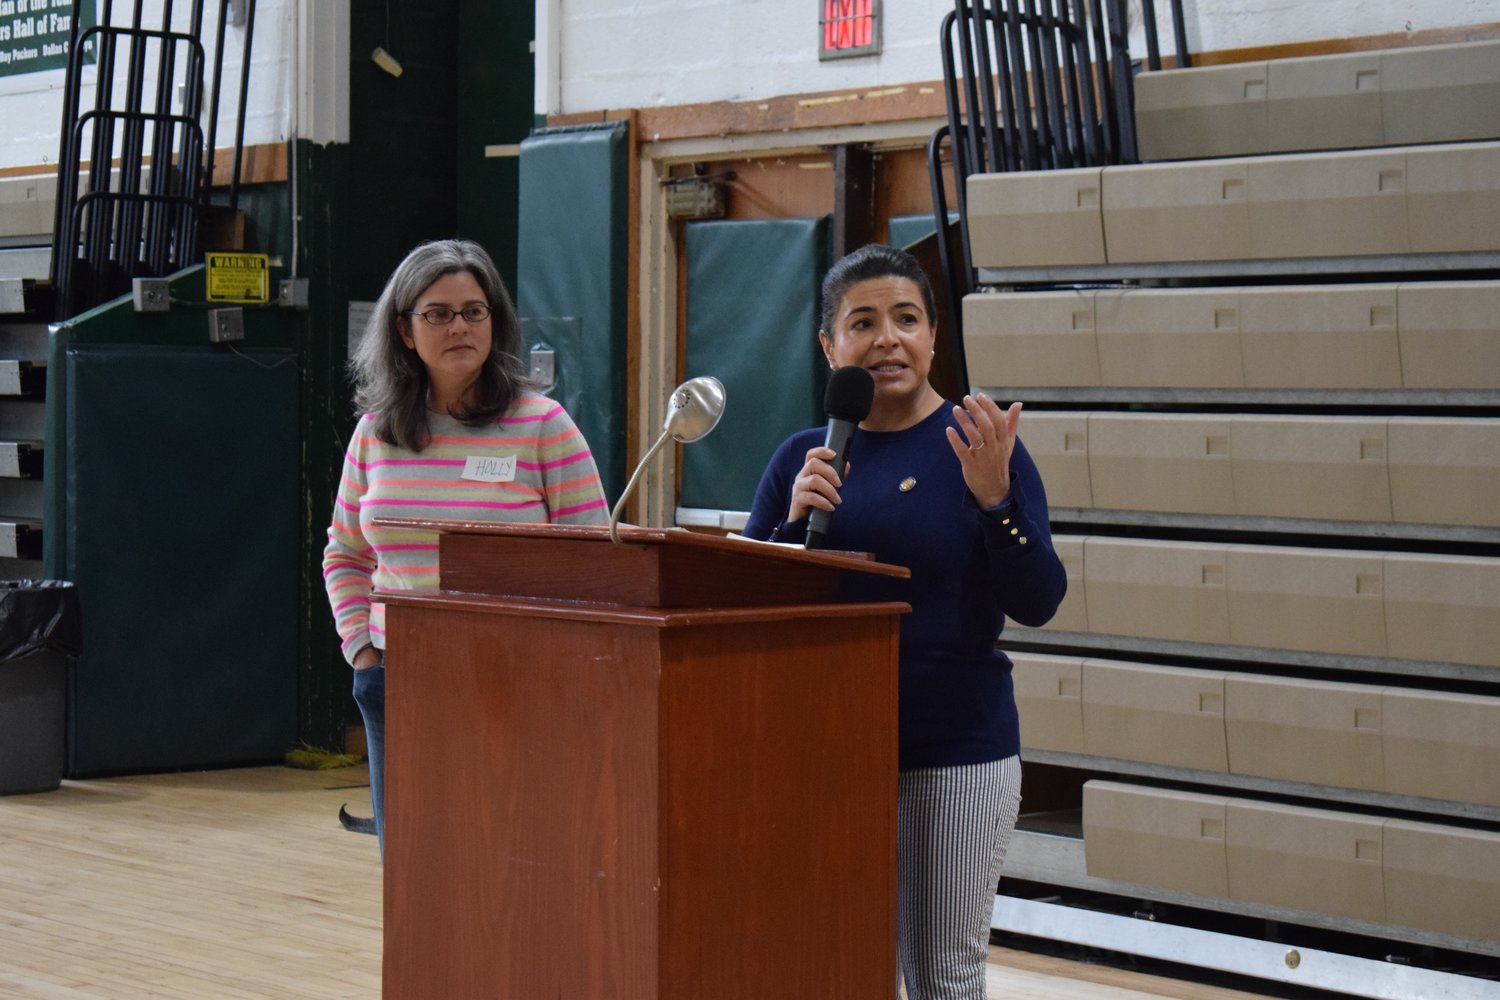 New York State Sen. Anna Kaplan, right, spoke about her hope to see a newly restored Elmont Road Park by 2021. Holly Leicht, of ESD, helped lead the workshop session with residents.